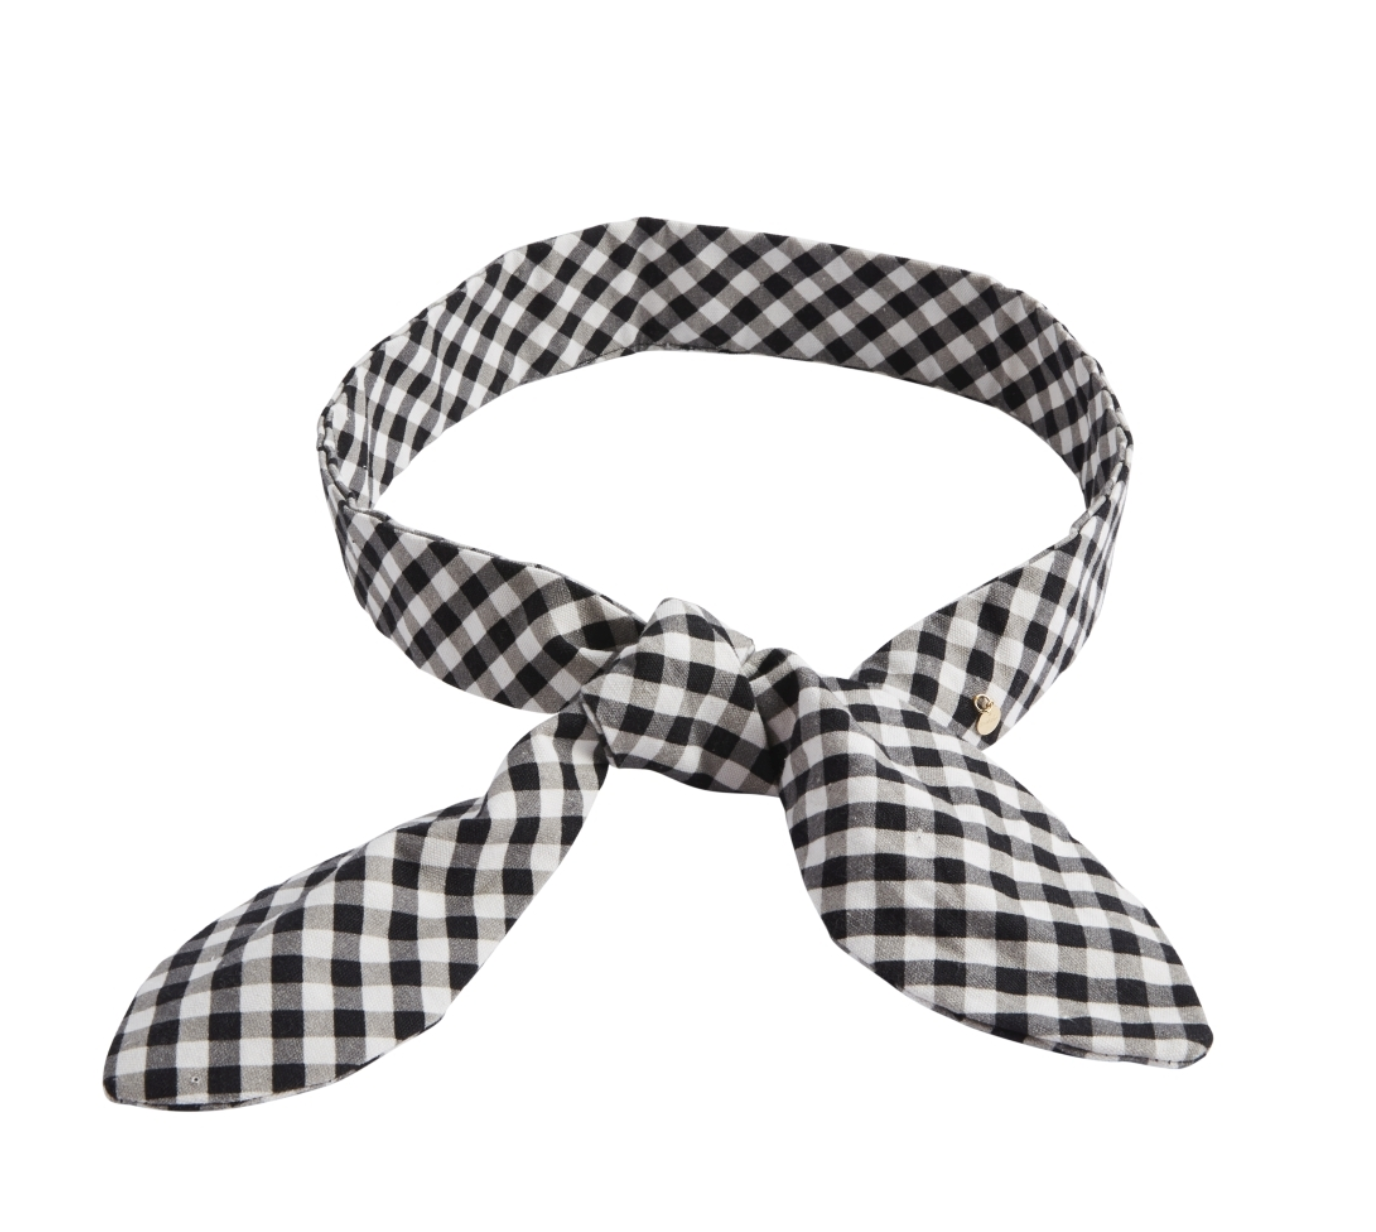 Woven Bow Belt - Black and White